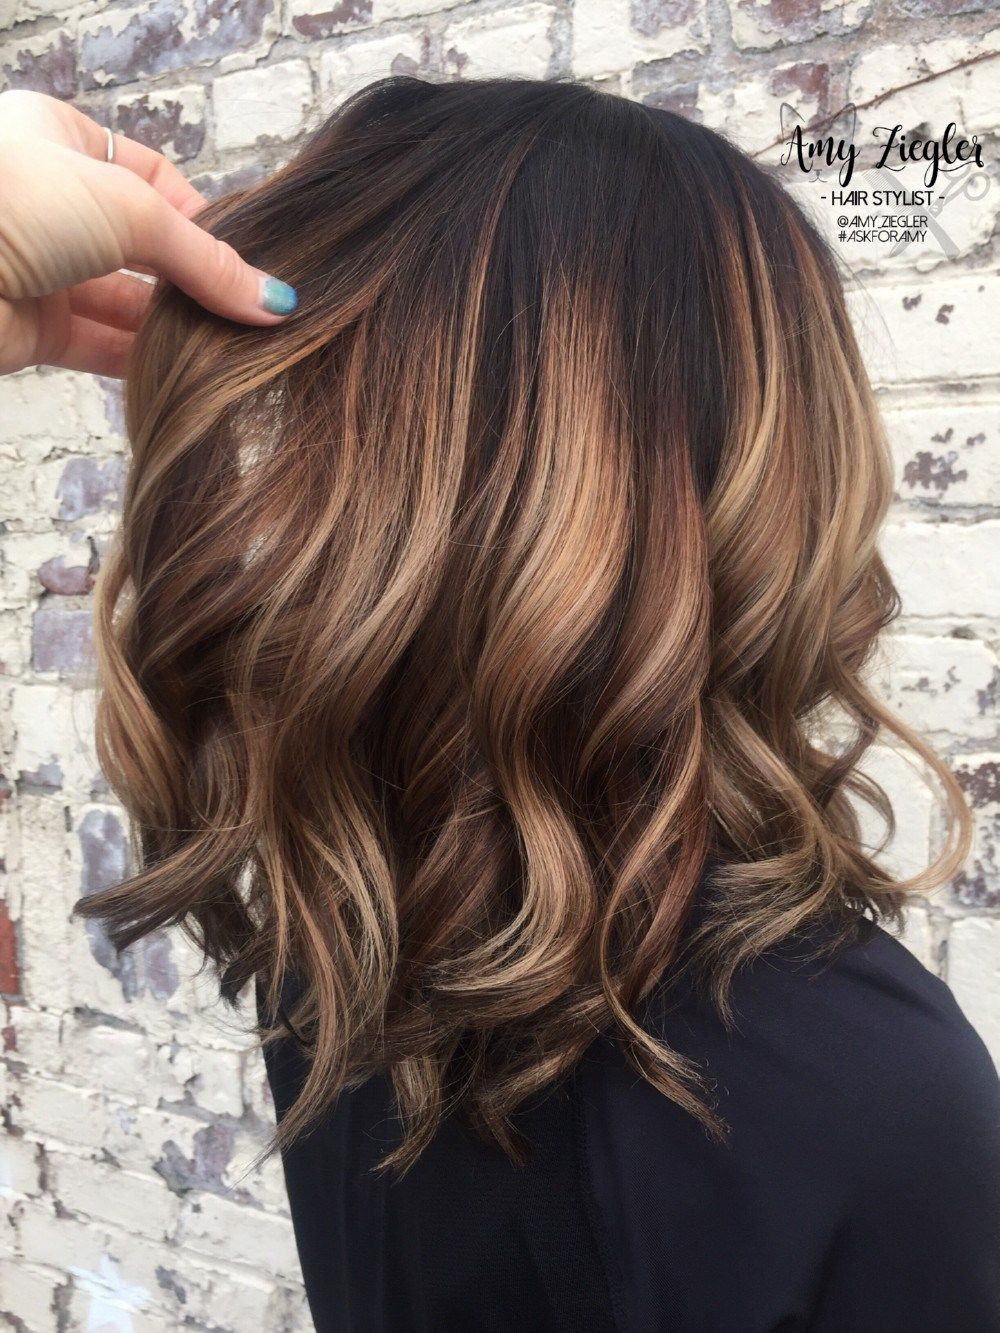 Top brunette hair color ideas to try 2017 (7) | Hair color ...